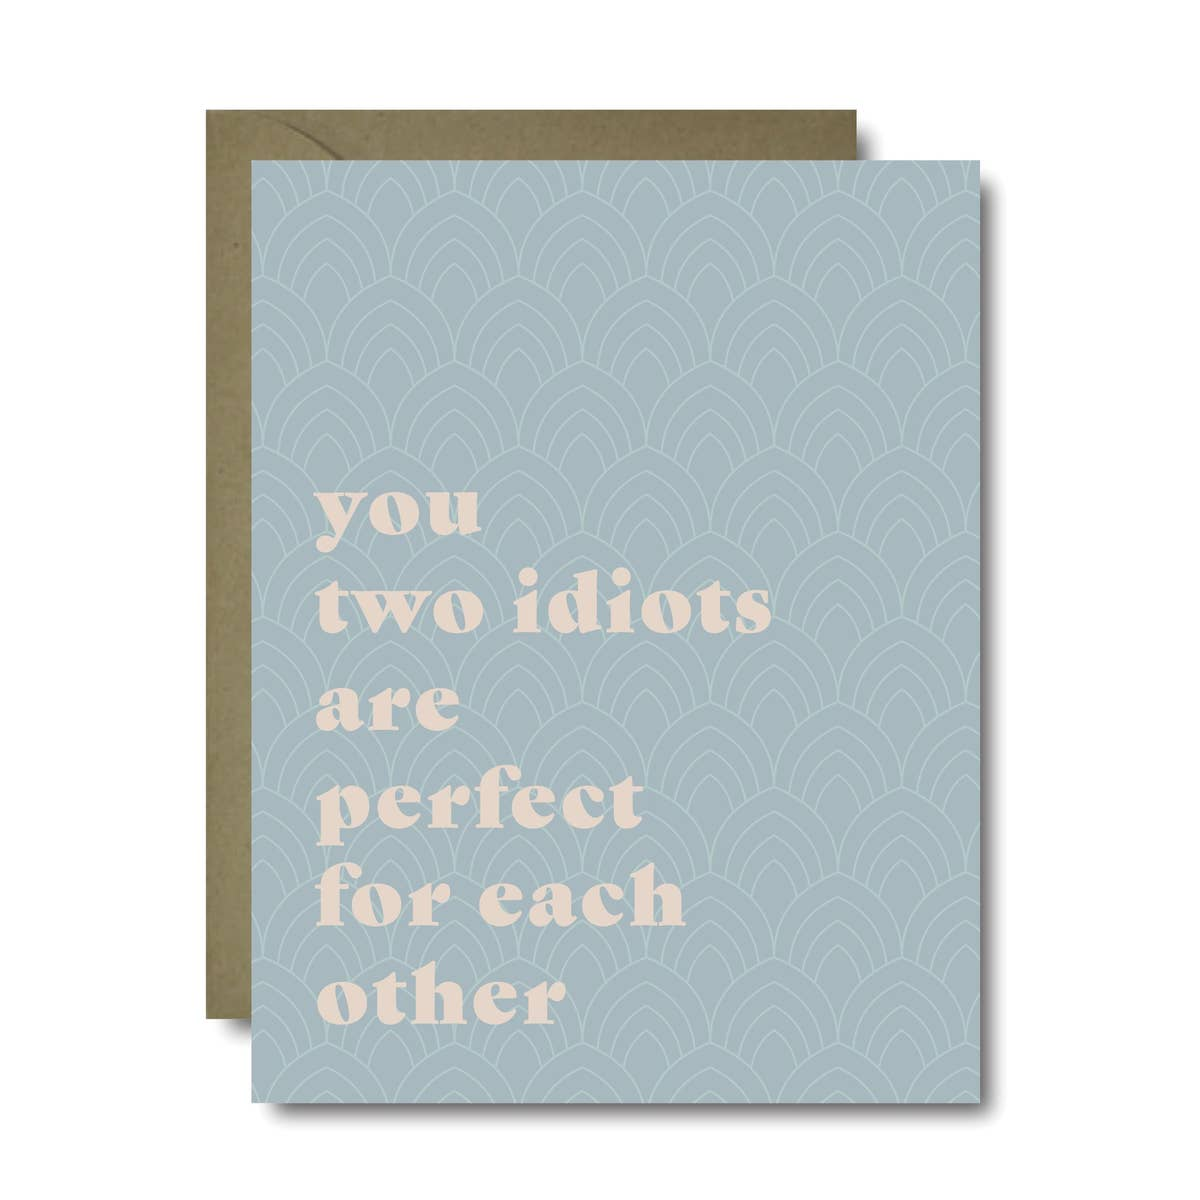 Two Idiots Wedding Greeting Card - by OKcollective Candle Co. Made in Oklahoma City